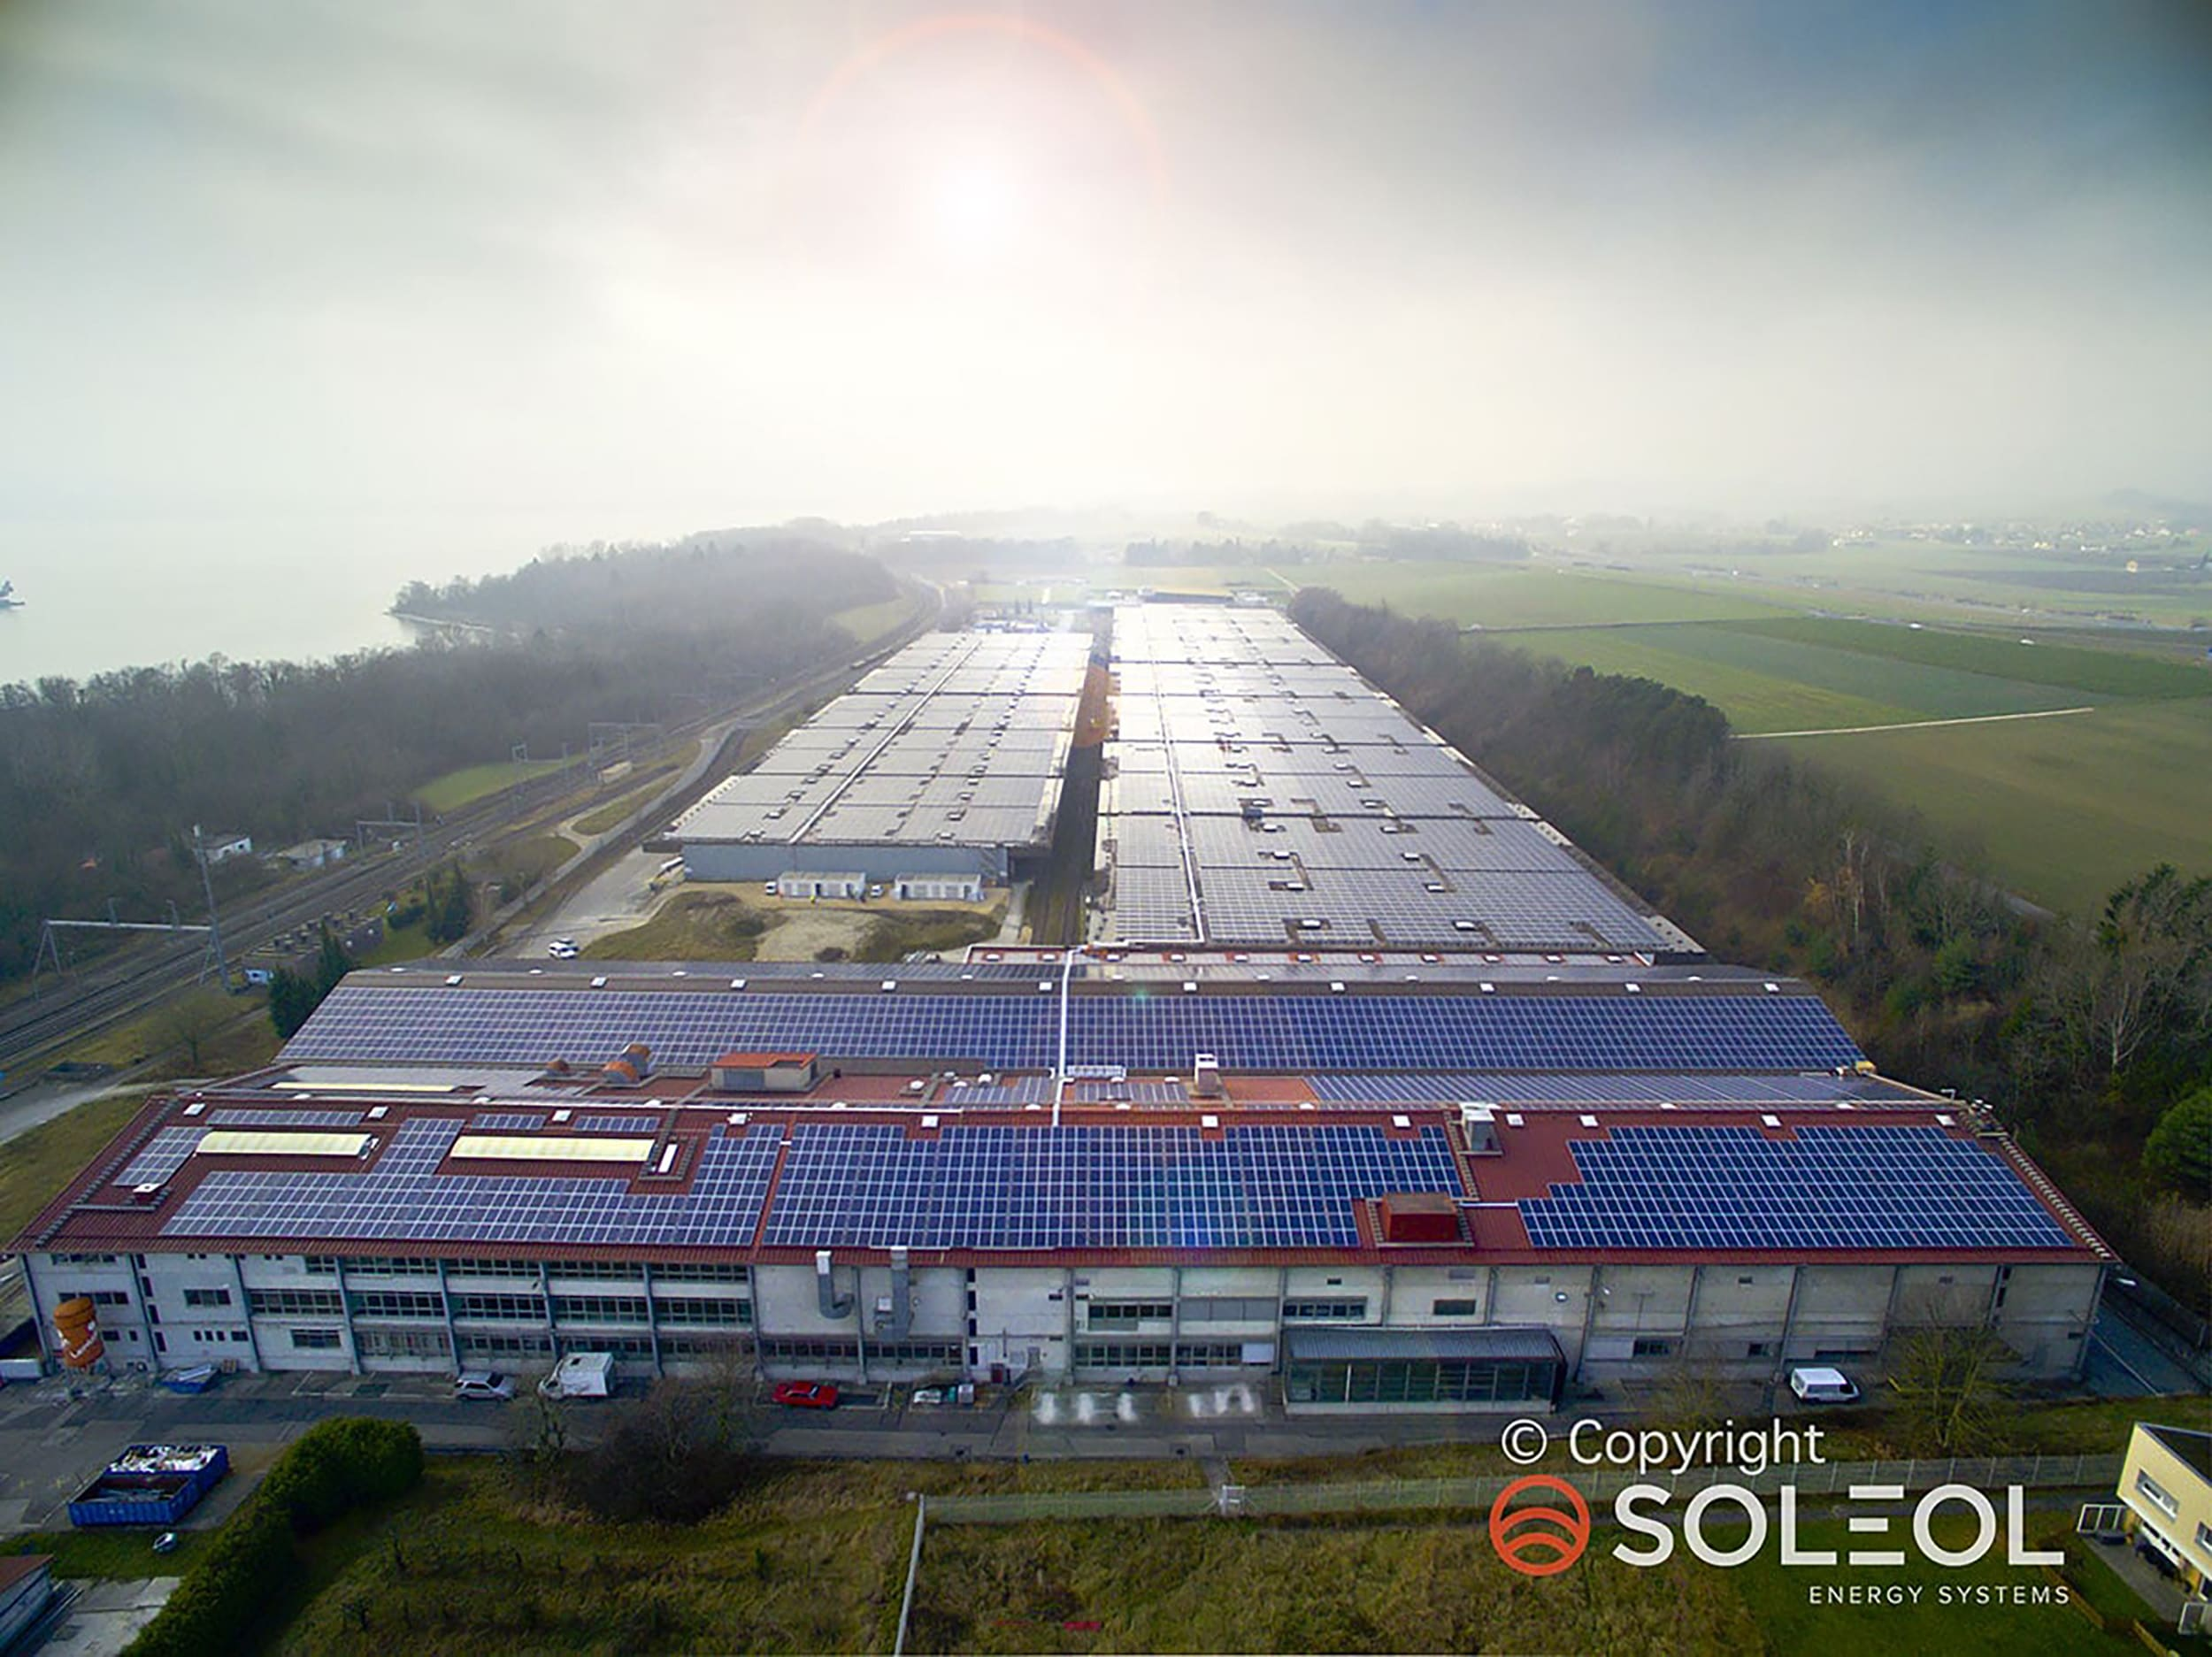 Our mountings on one of the largest photovoltaic power plants in Switzerland